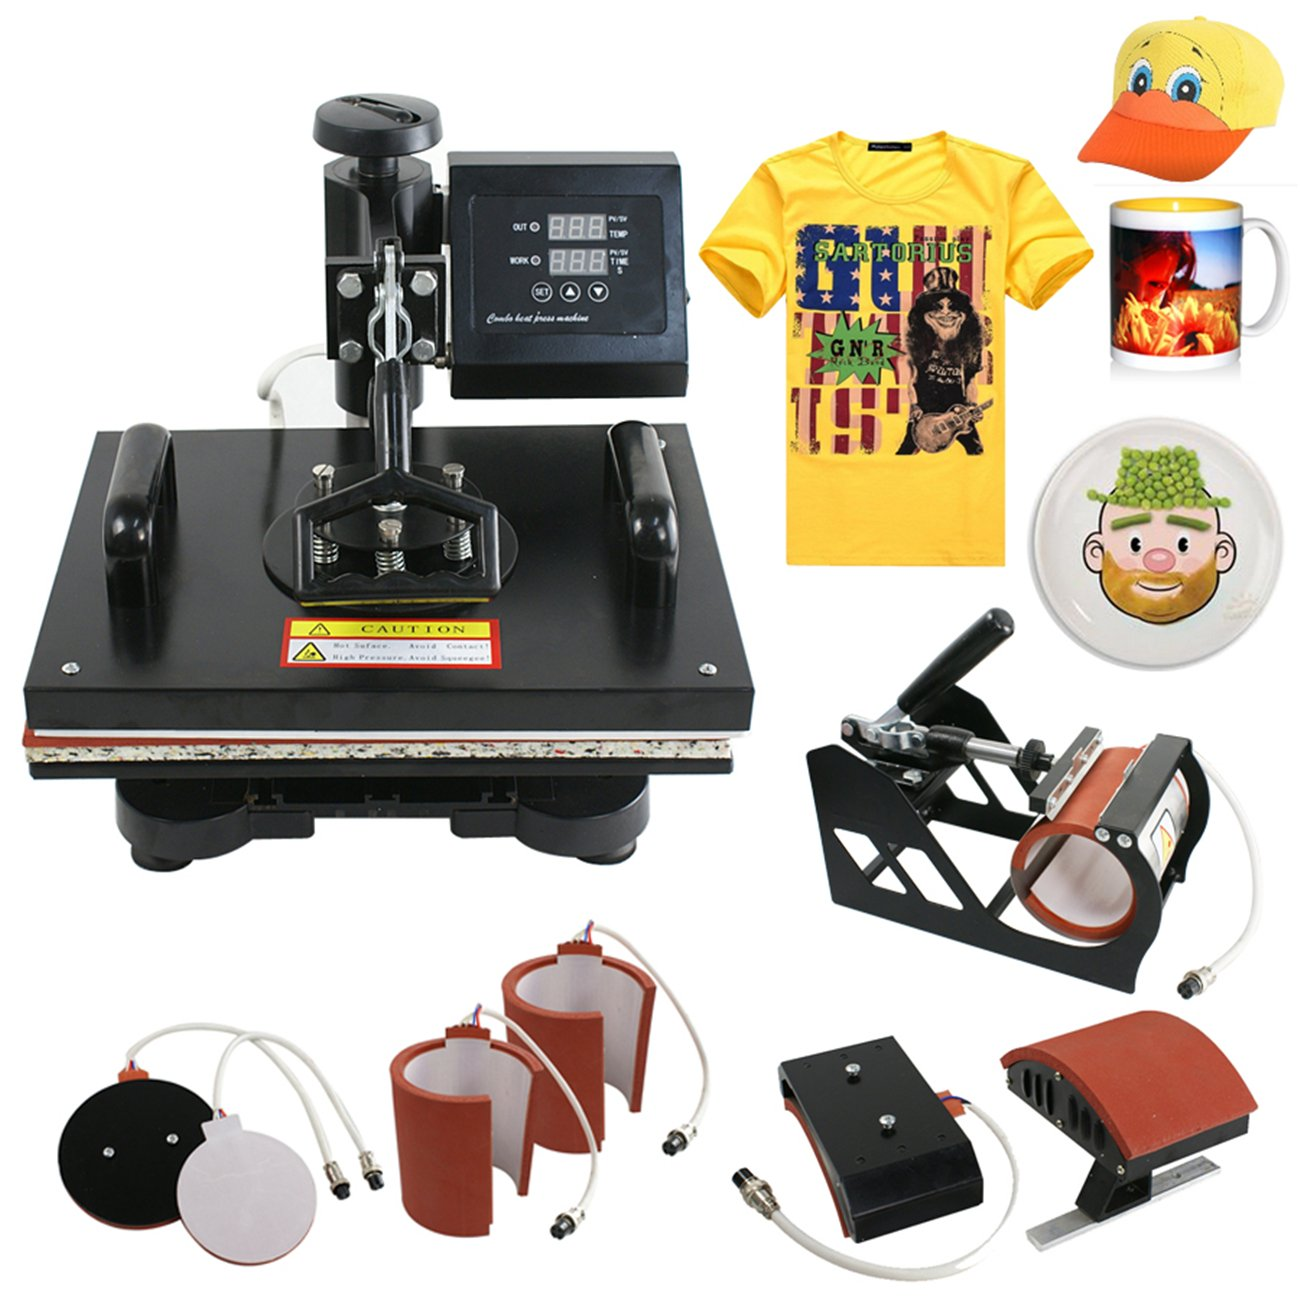 Segawe 6in1 Digital Transfer Heat Press Machine Sublimation T-shirt Mug Hat Plate Cap by Segawe